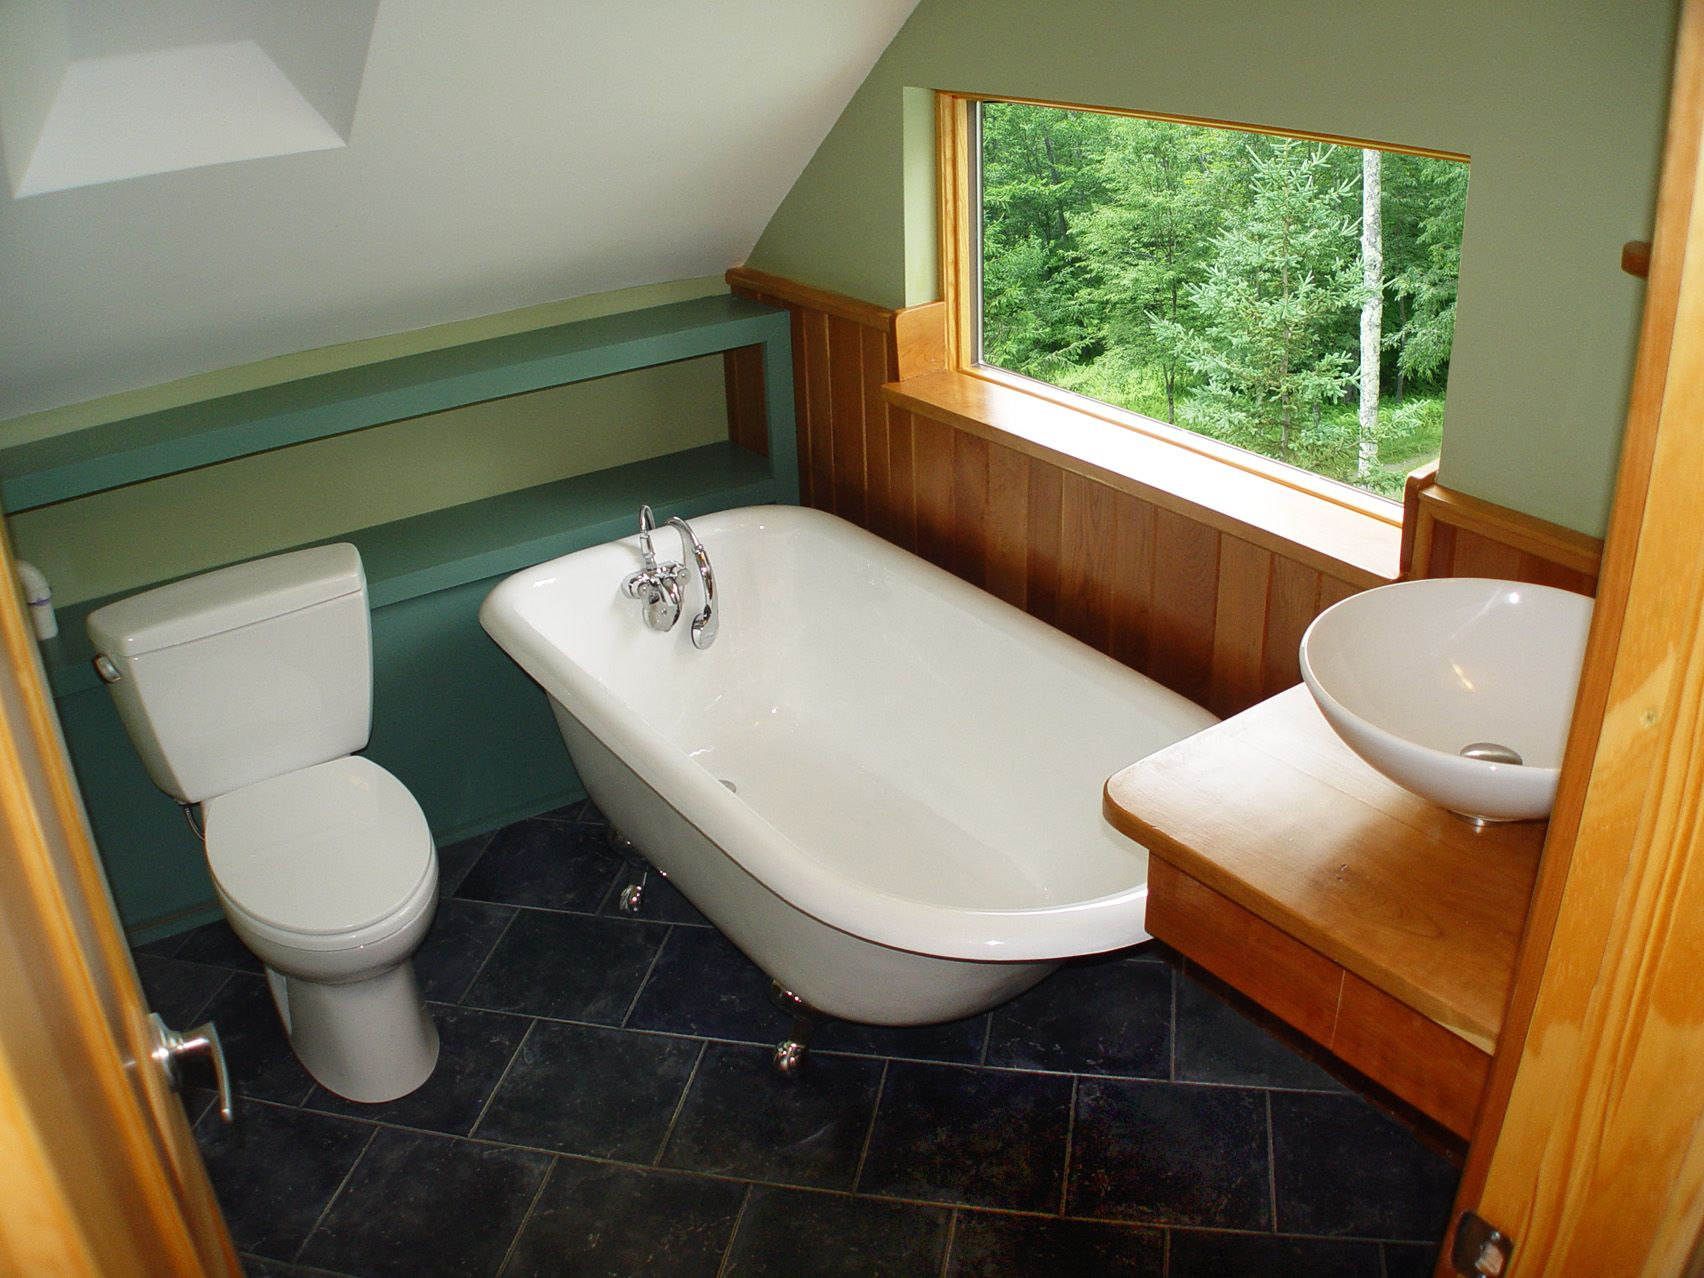 Bathrooms With Slanted Ceilings Google Search House Ideas Pinterest Ceilings Toilet And